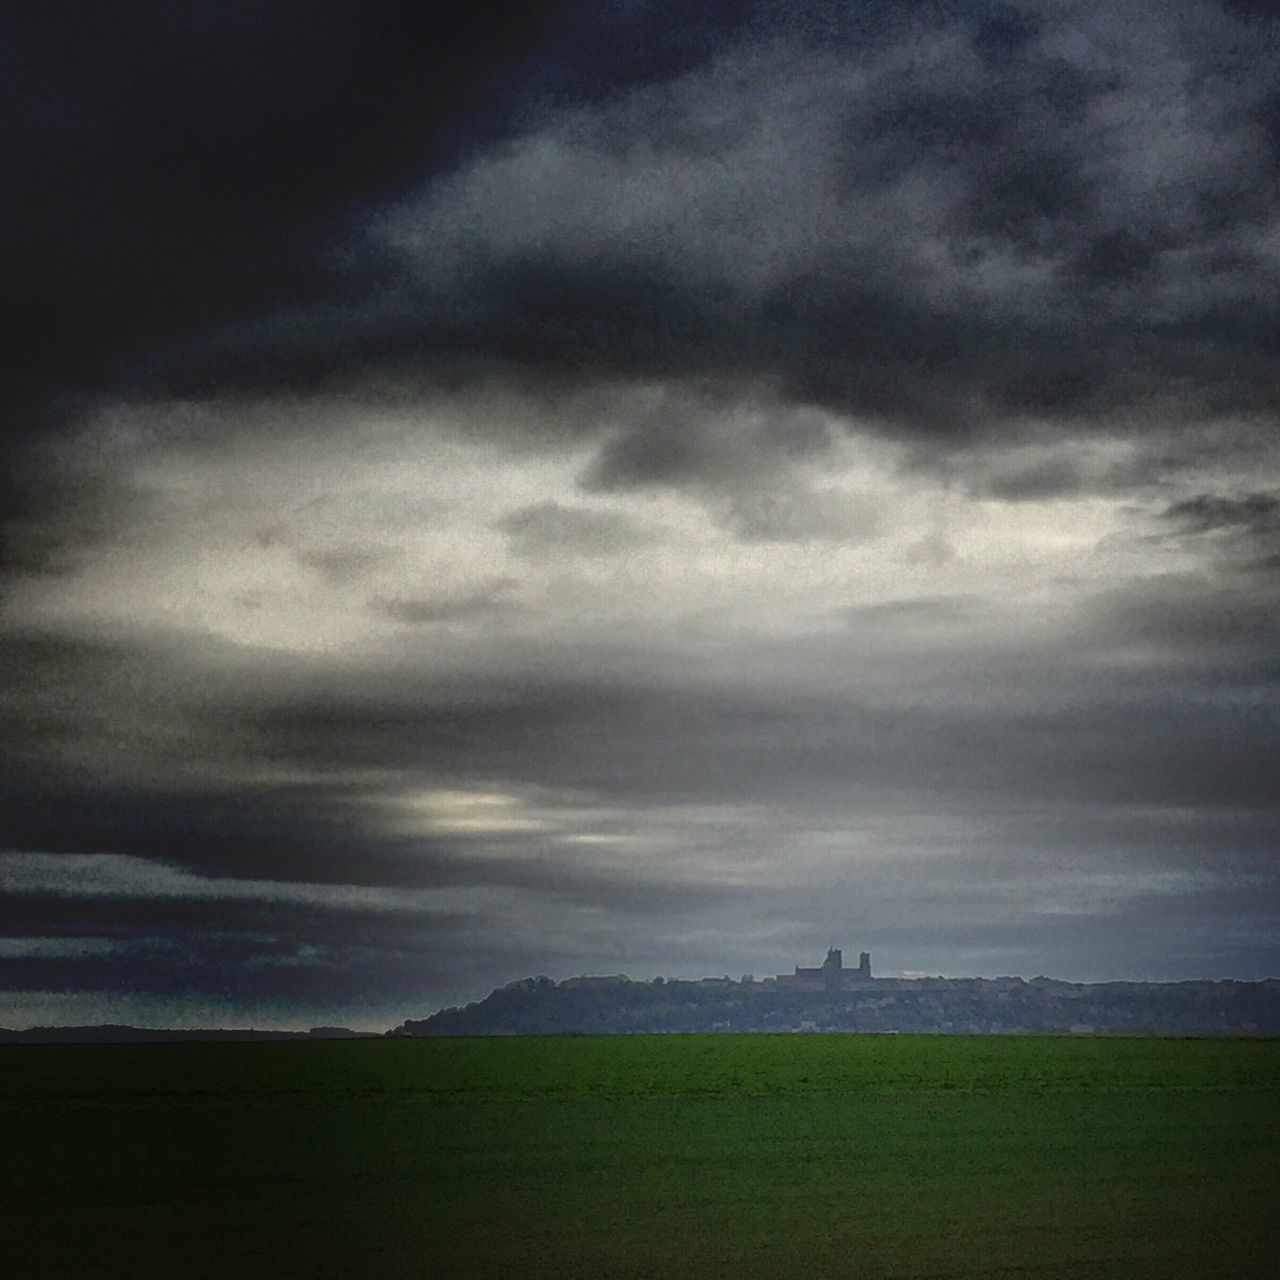 sky, cloud - sky, weather, storm cloud, no people, dramatic sky, nature, field, storm, landscape, travel destinations, outdoors, day, thunderstorm, scenics, beauty in nature, cityscape, architecture, grass, scenery, city